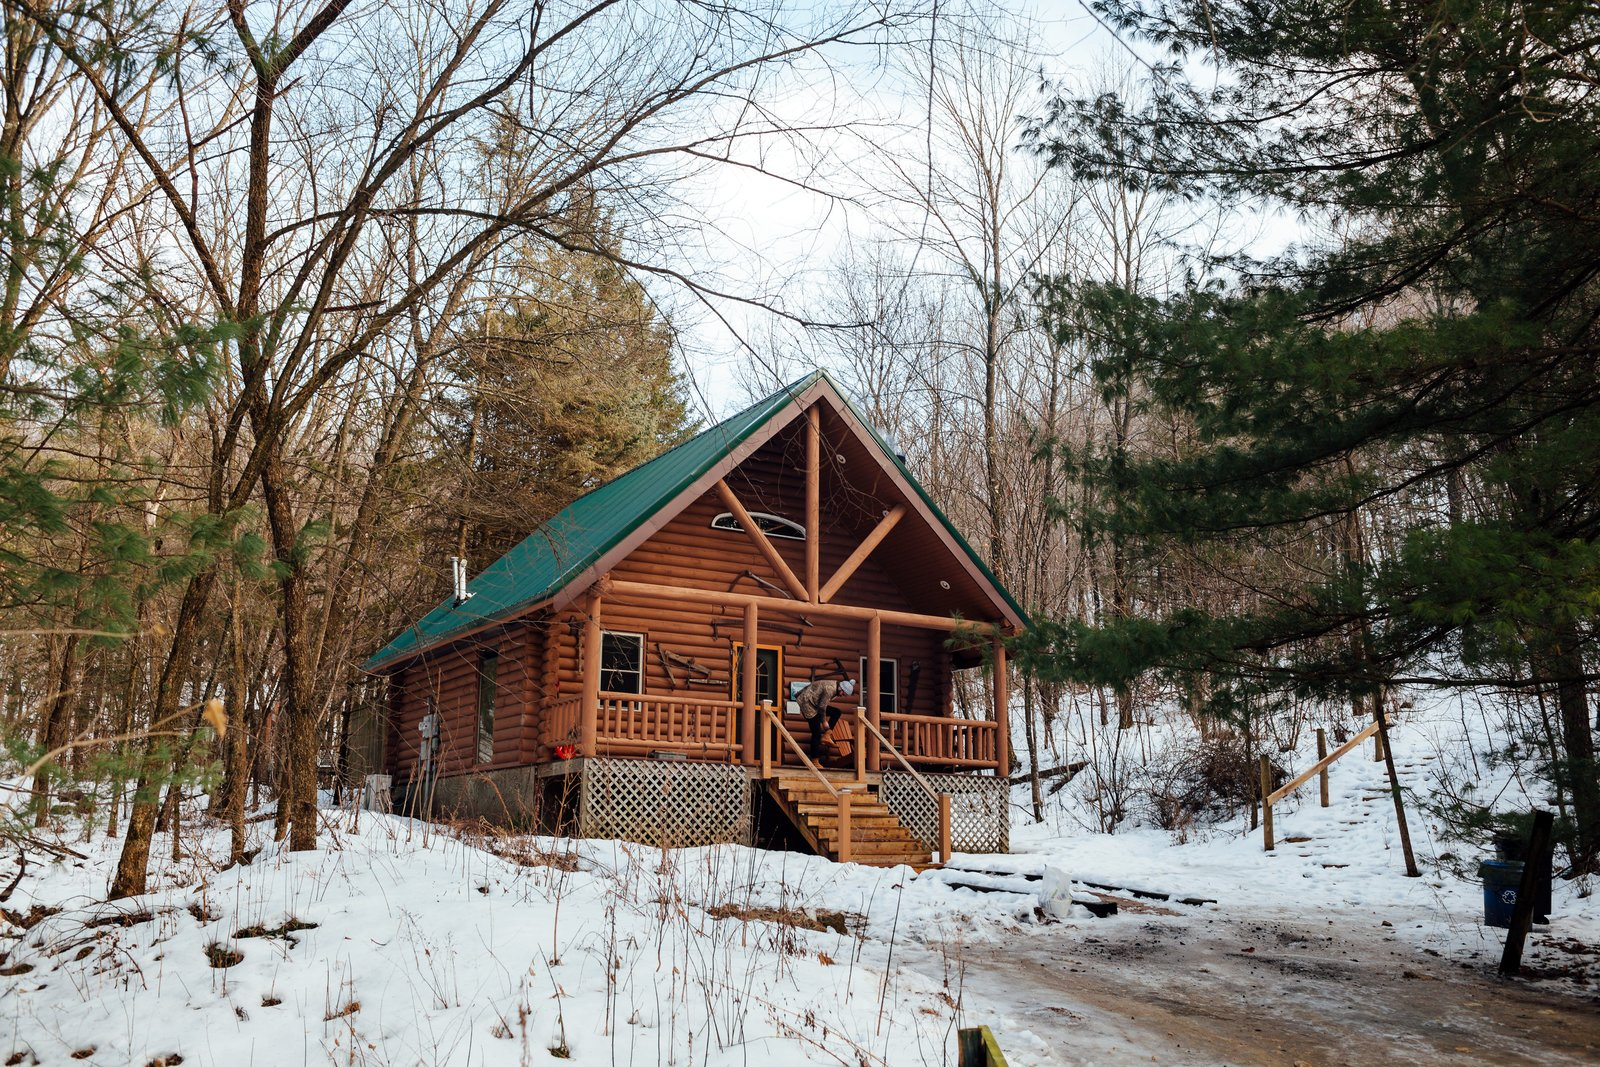 Photo 8 of 9 in Add These Cabins to Your Bucket List